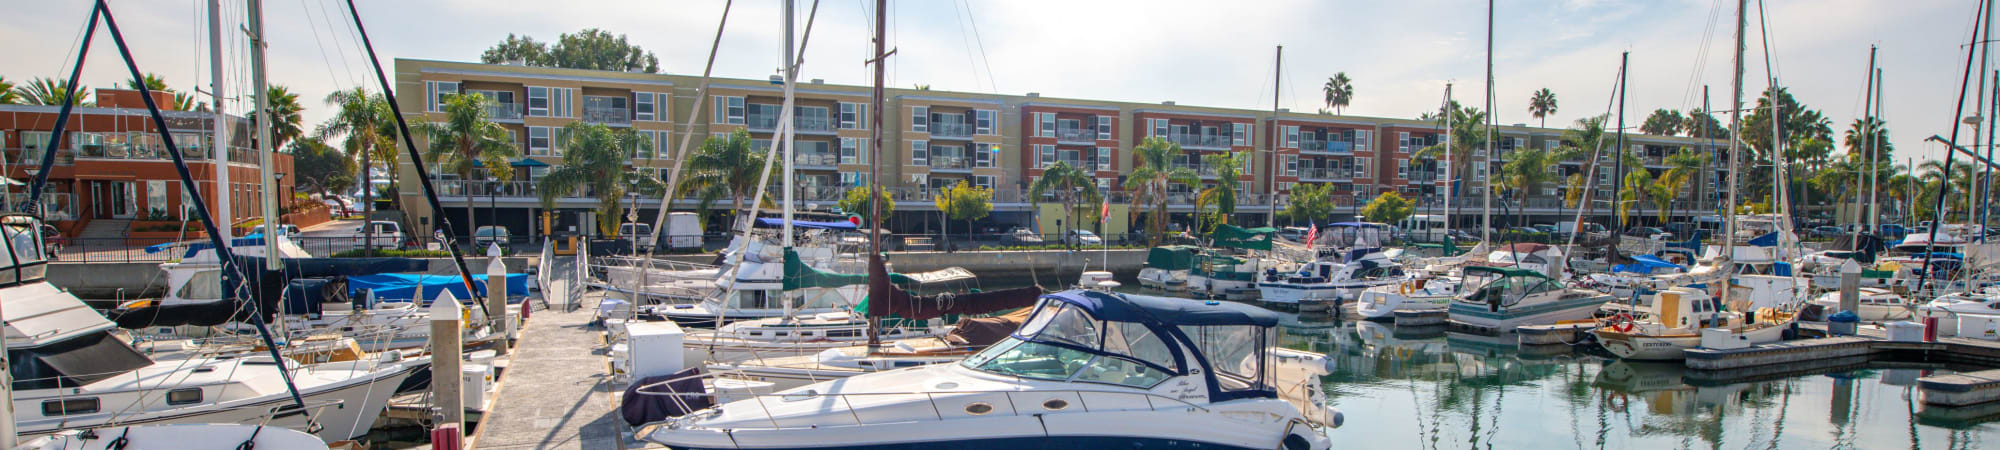 Contact Harborside Marina Bay Apartments to learn more about our outdoor pool, in Marina del Rey, California